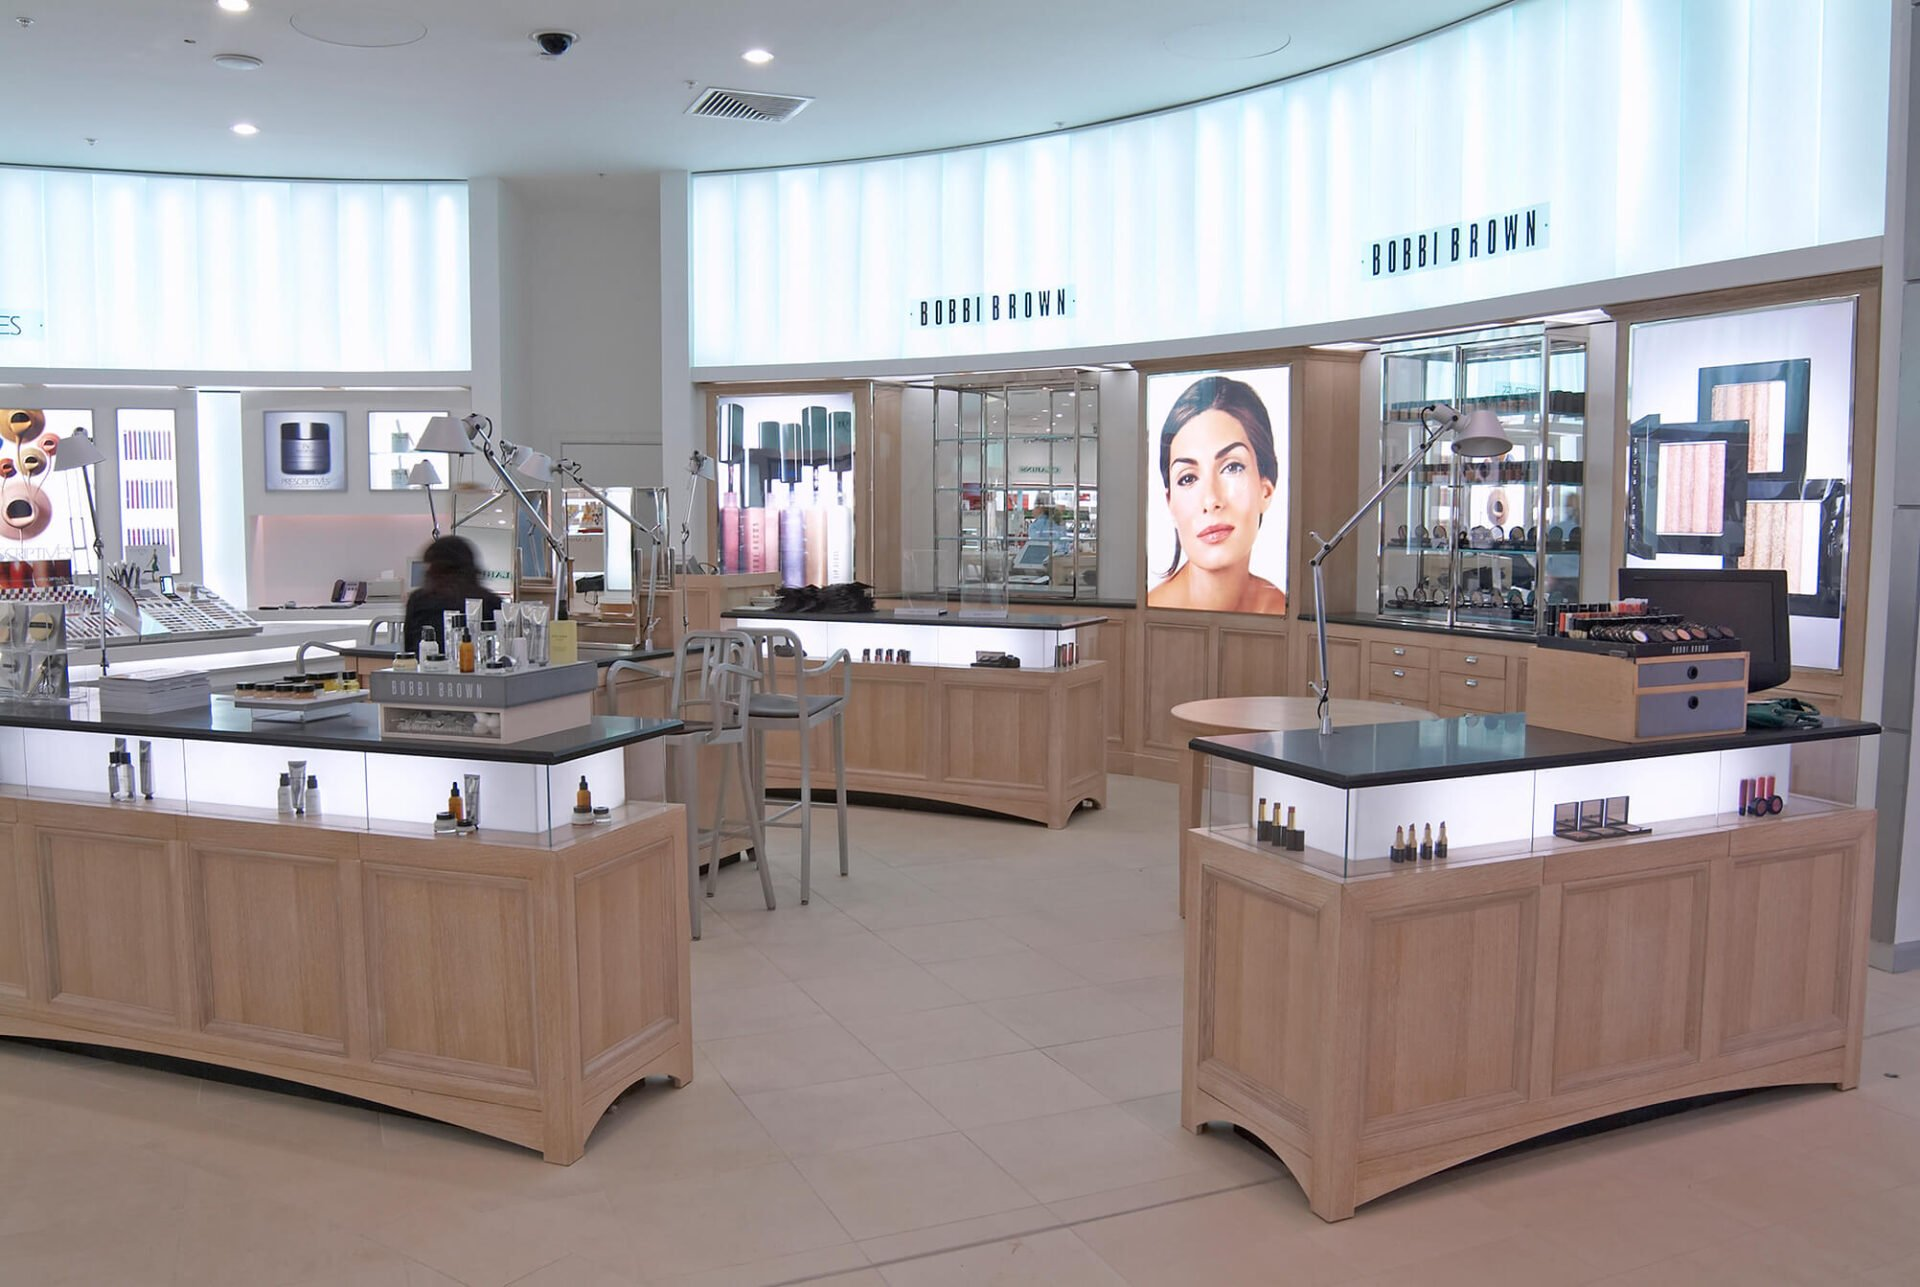 Bobbi Brown Retail Photography